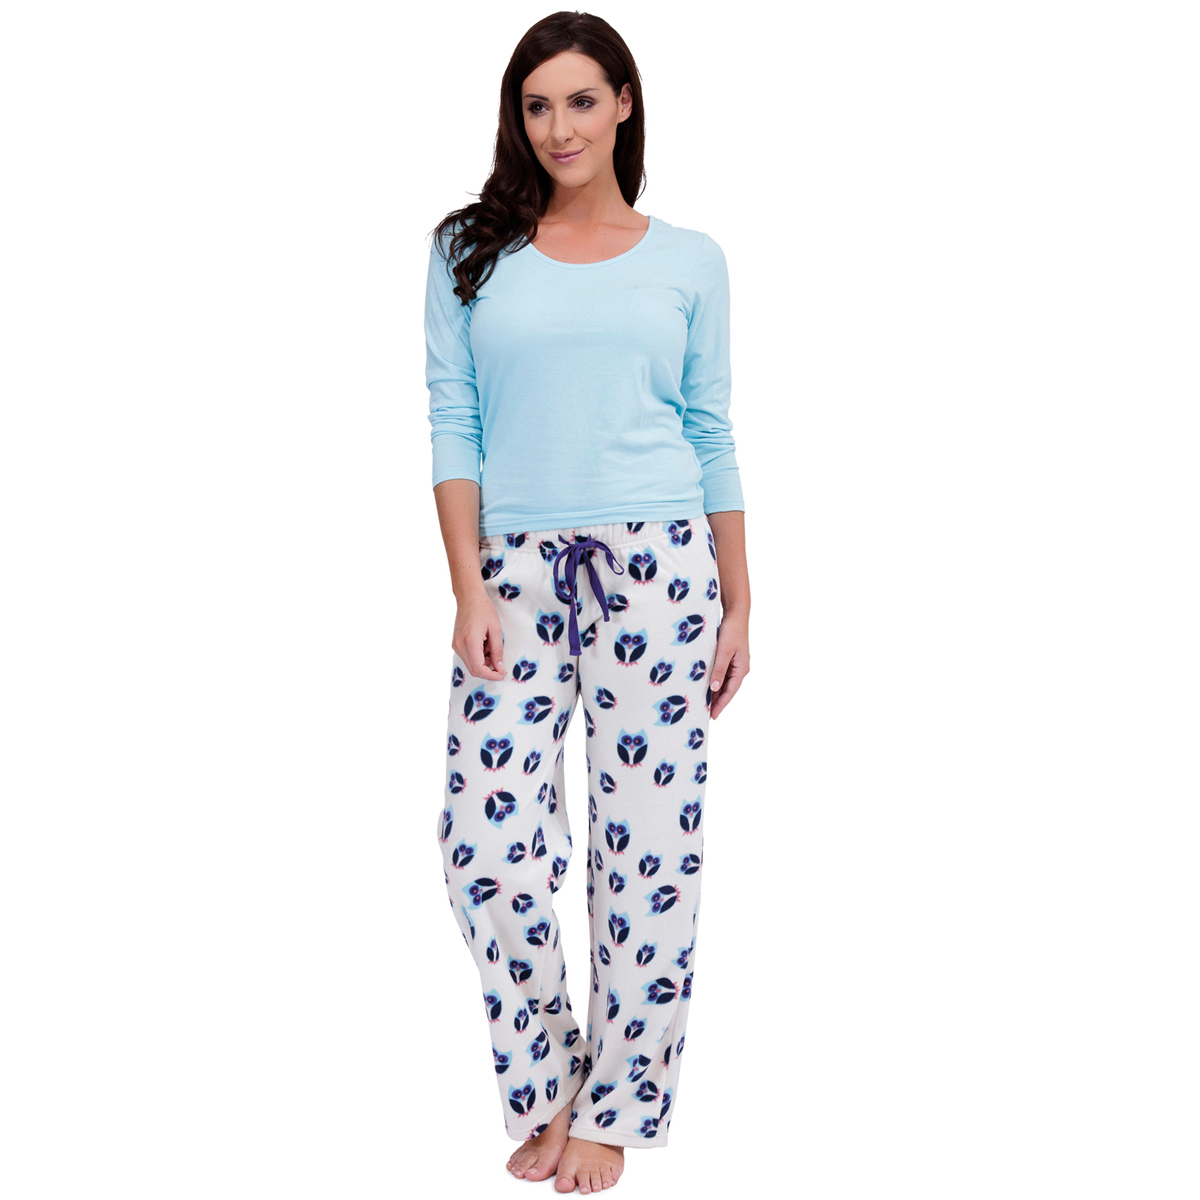 Womens Warm Fleece Winter PJ Pyjama Set Night Wear PJ s Pyjamas Sets Ladies   e3e90ca4d